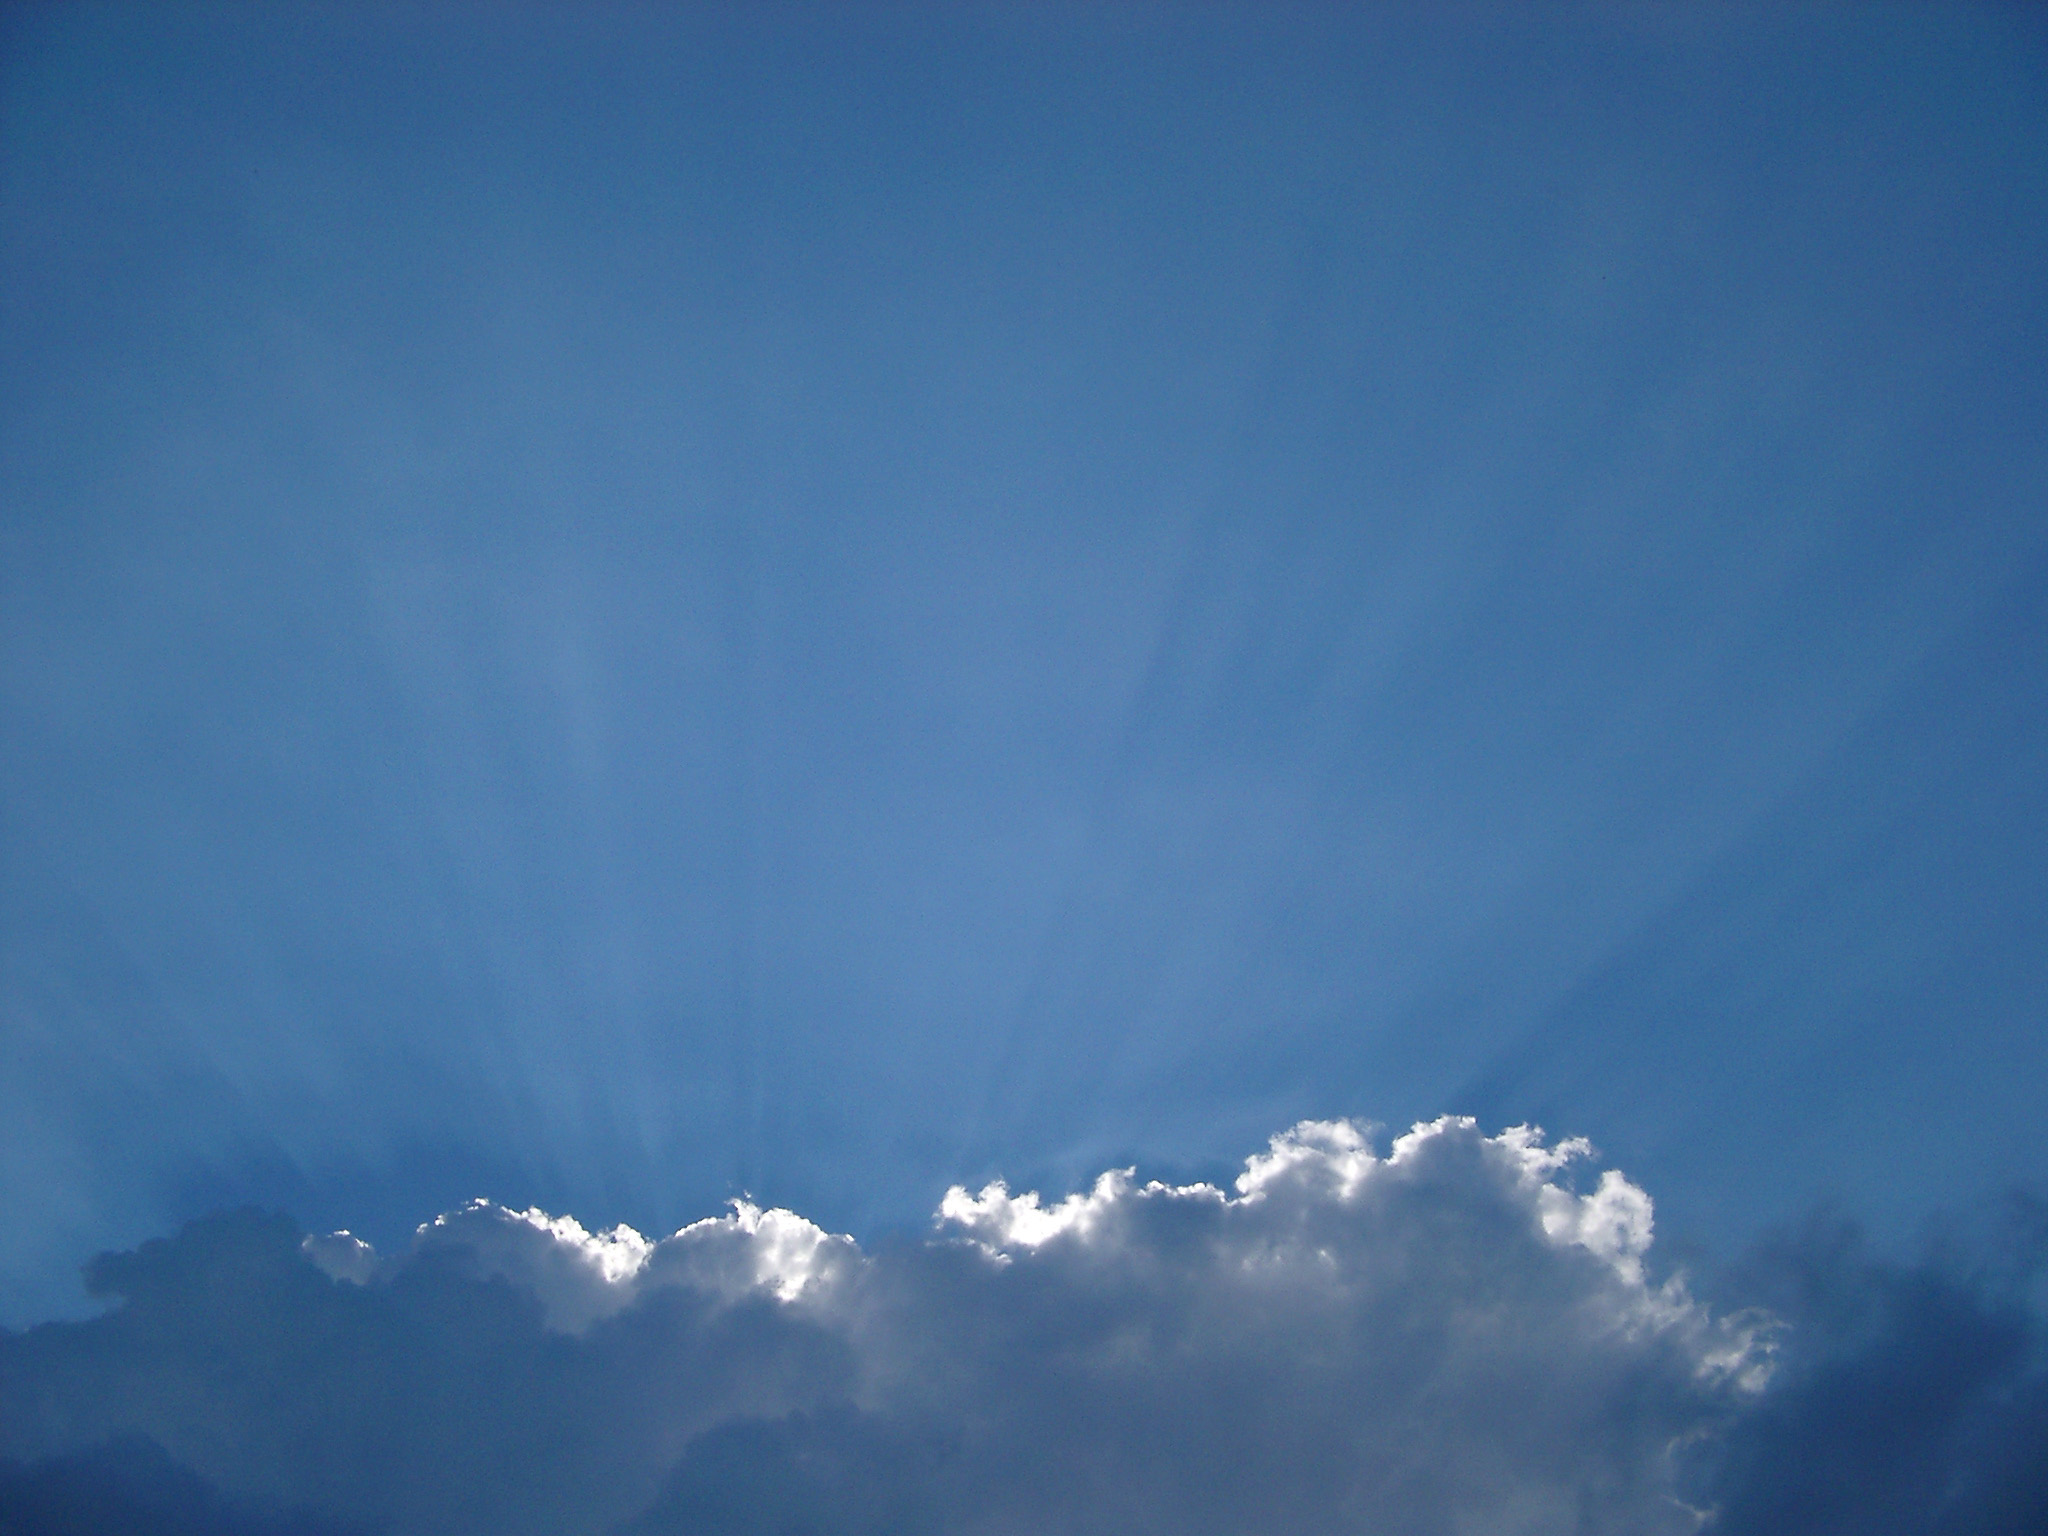 Bank of white clouds catching the rays of sunshine in a blue sky with copyspace for your text